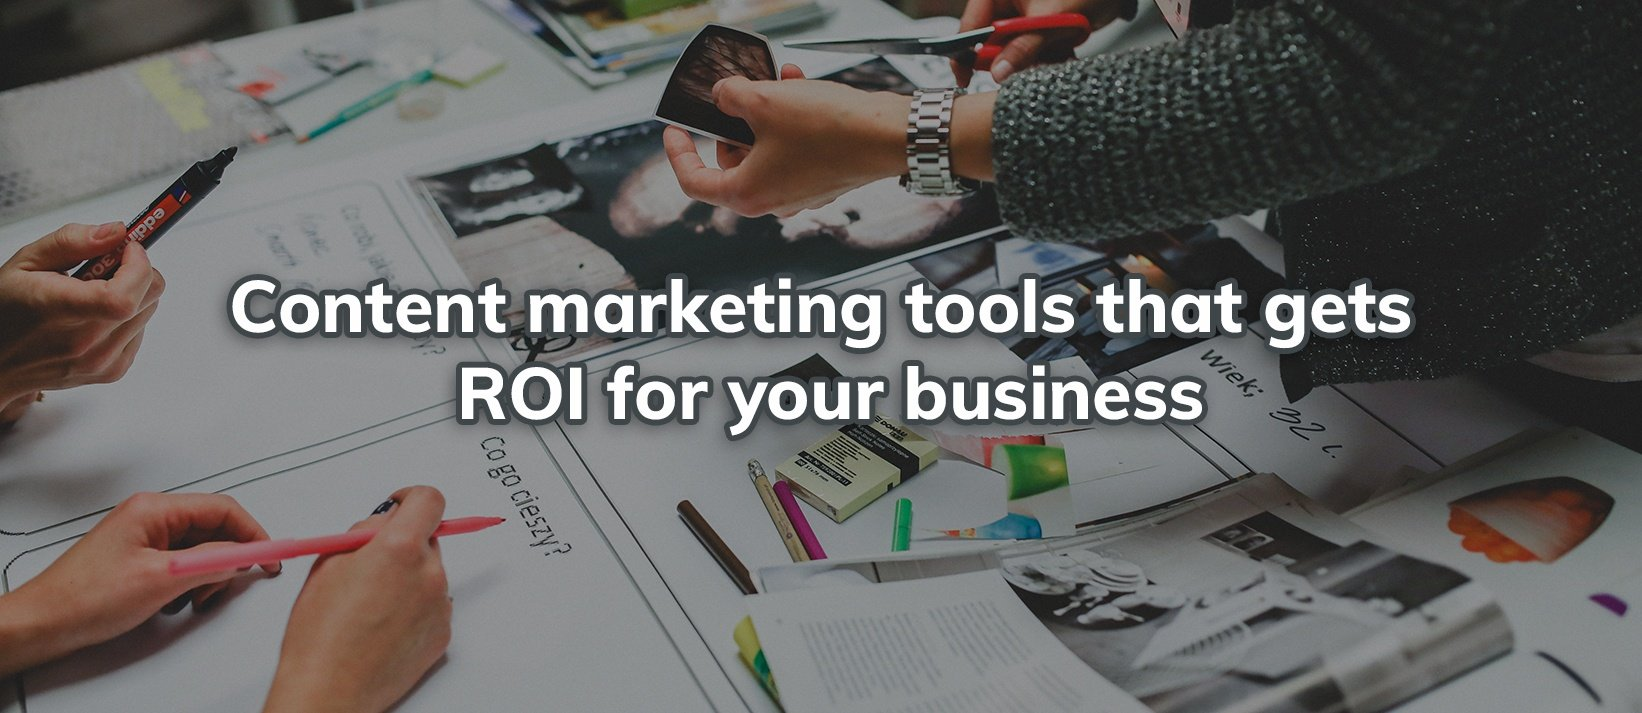 Content marketing tools that gets ROI for your business